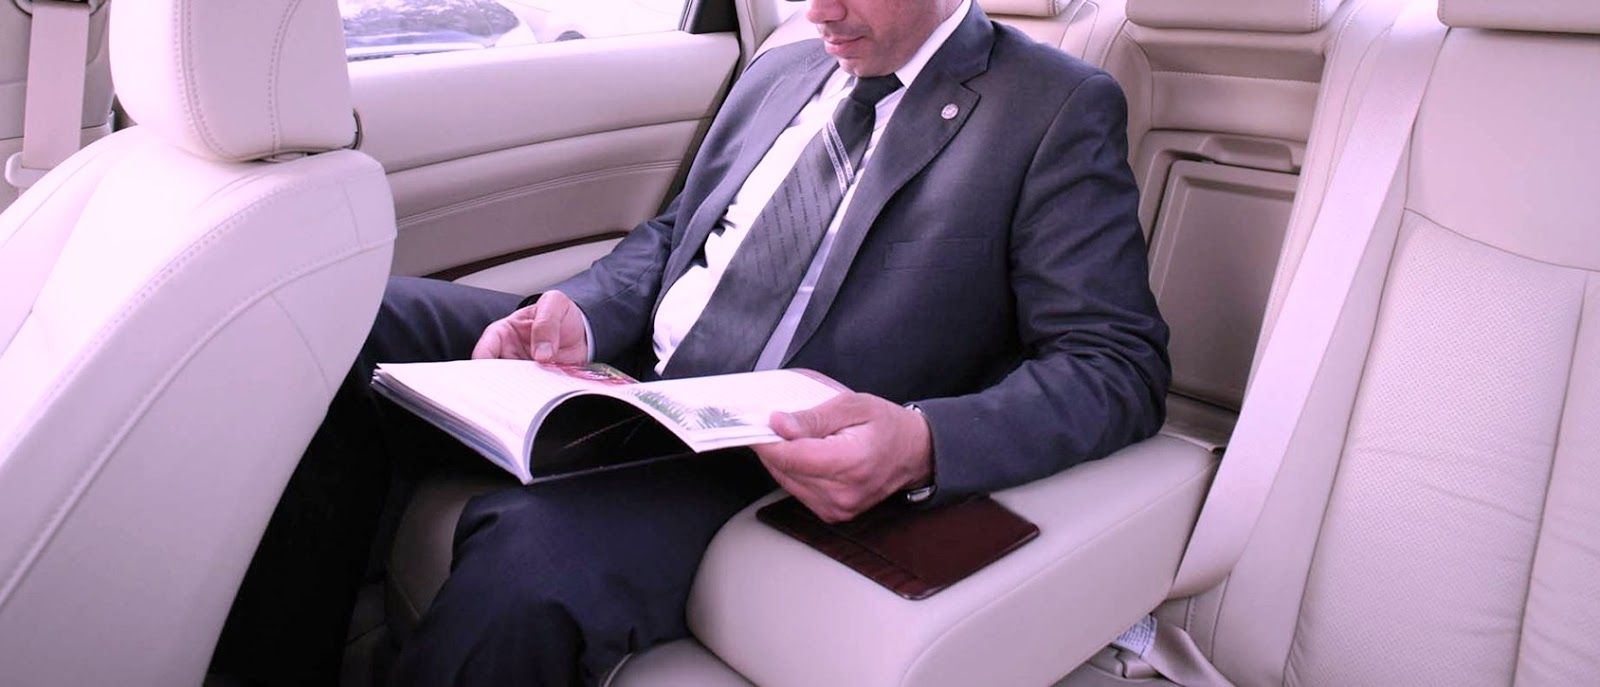 Luxury Chauffeurs In Melbourne Hire For The Right Impact Chauffeur Melbourne Cool Things To Make